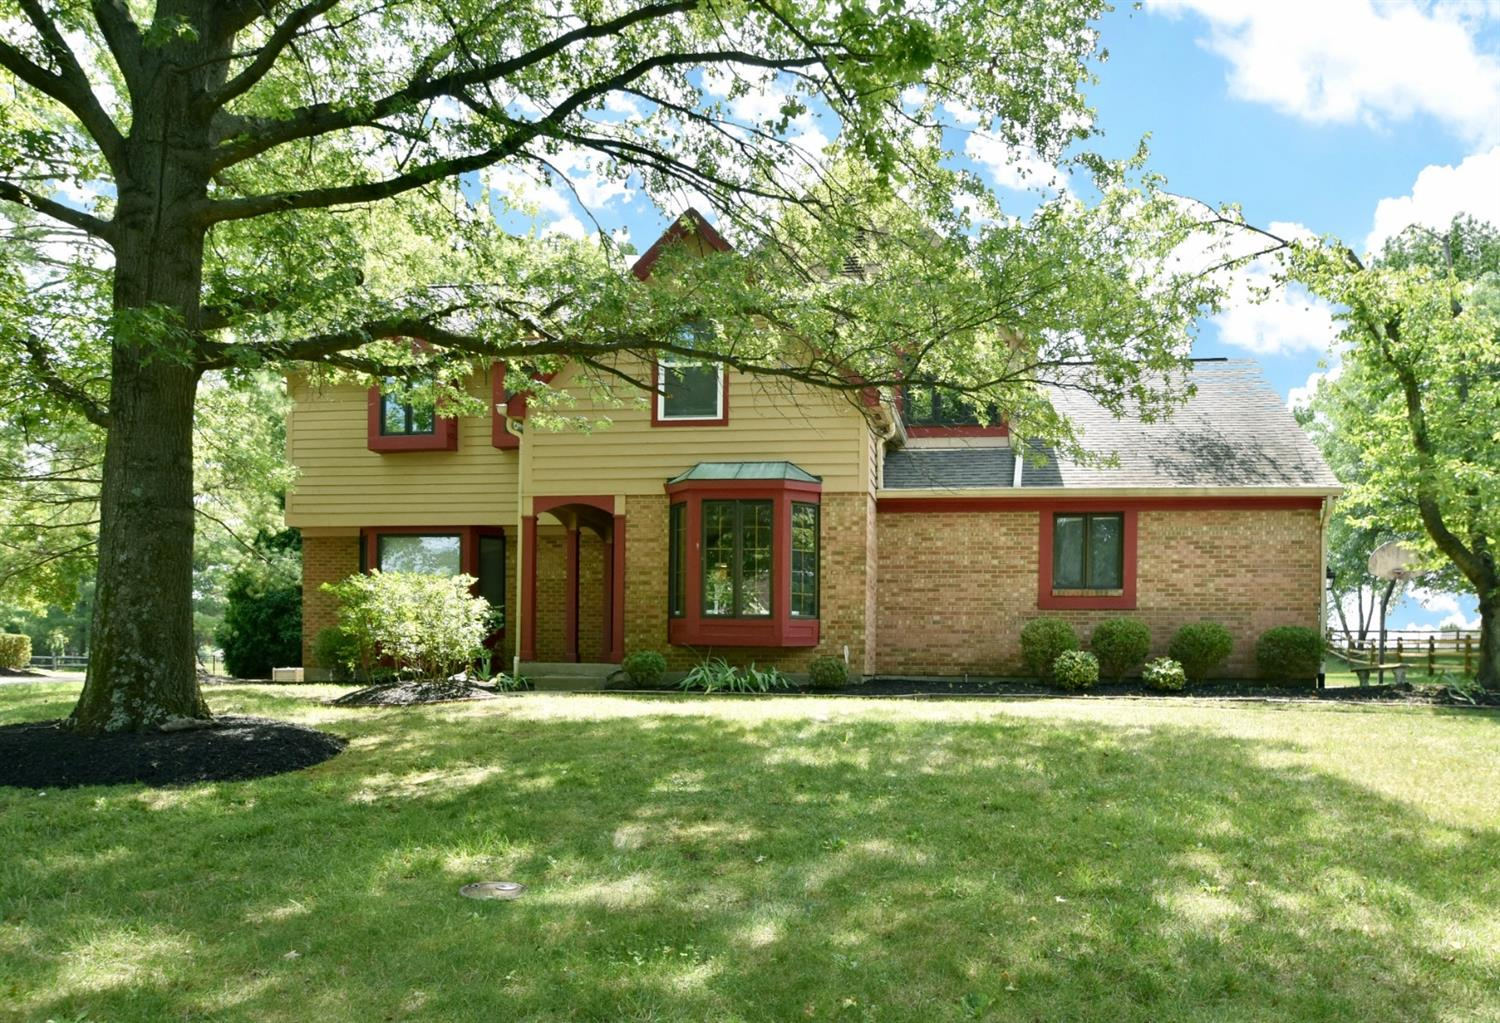 8009 New Brunswick Dr West Chester - East, OH